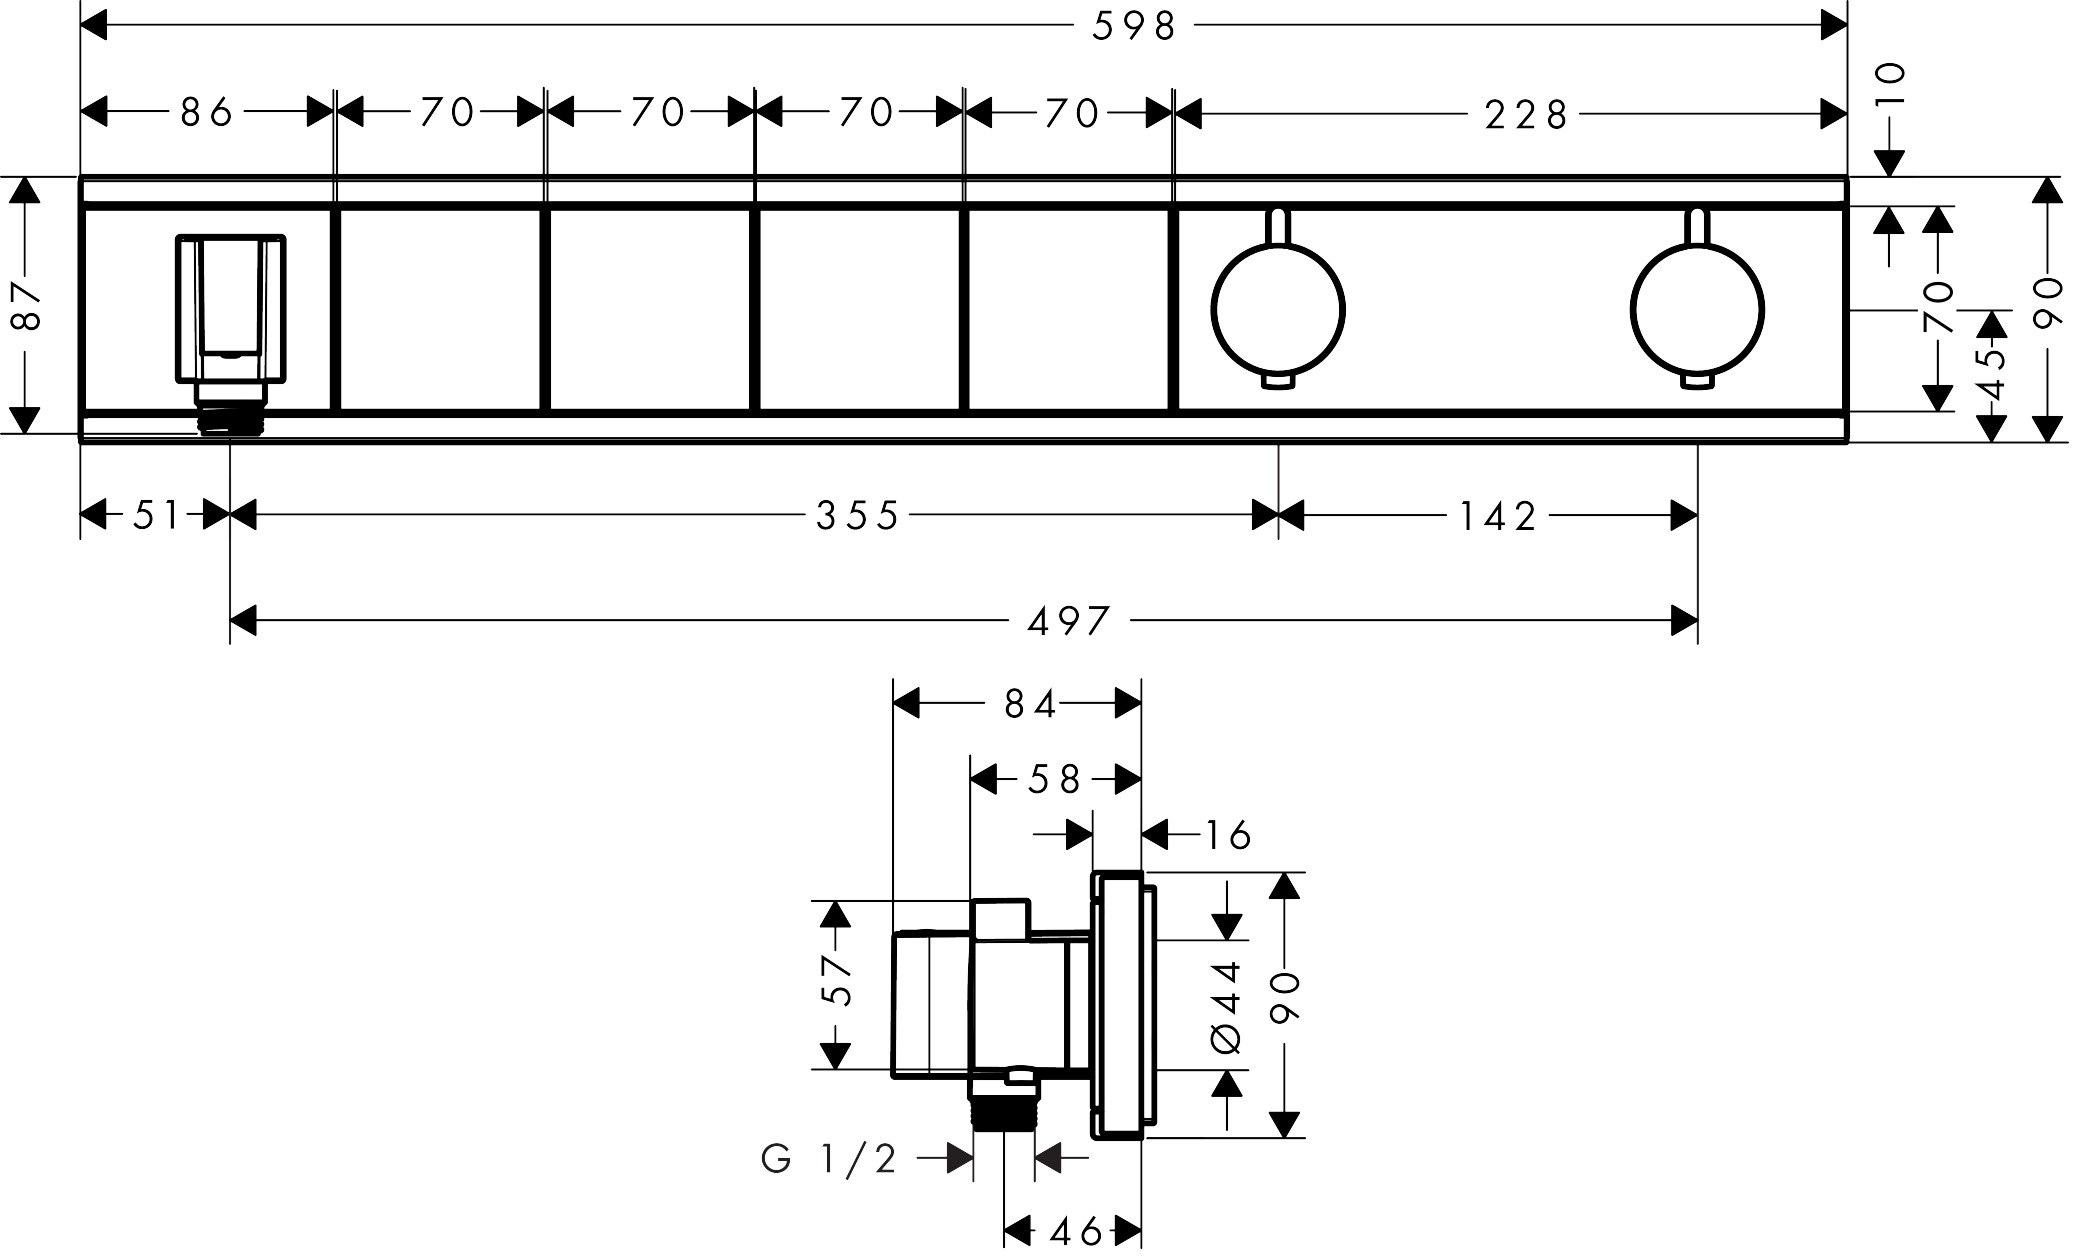 mm 2 58t wiring diagram for thermostat wiring library mm 2 58t wiring diagram for thermostat [ 2073 x 1256 Pixel ]